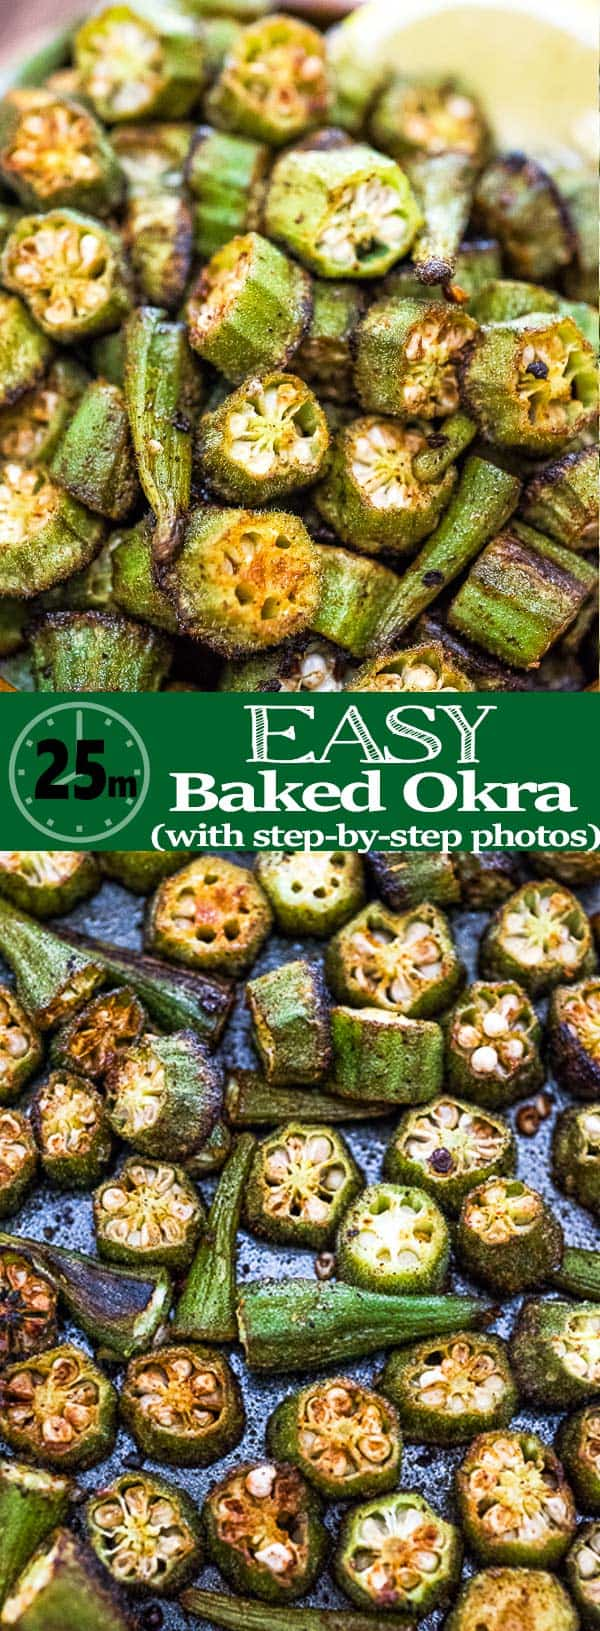 This is a simple, flavorful, and easy Baked Okra recipe. Seasoned with paprika, salt, and a pinch of cayenne, this okra makes a great snack or side dish.❤ COOKTORIA.COM #okra #vegetarian #snack #appetizer